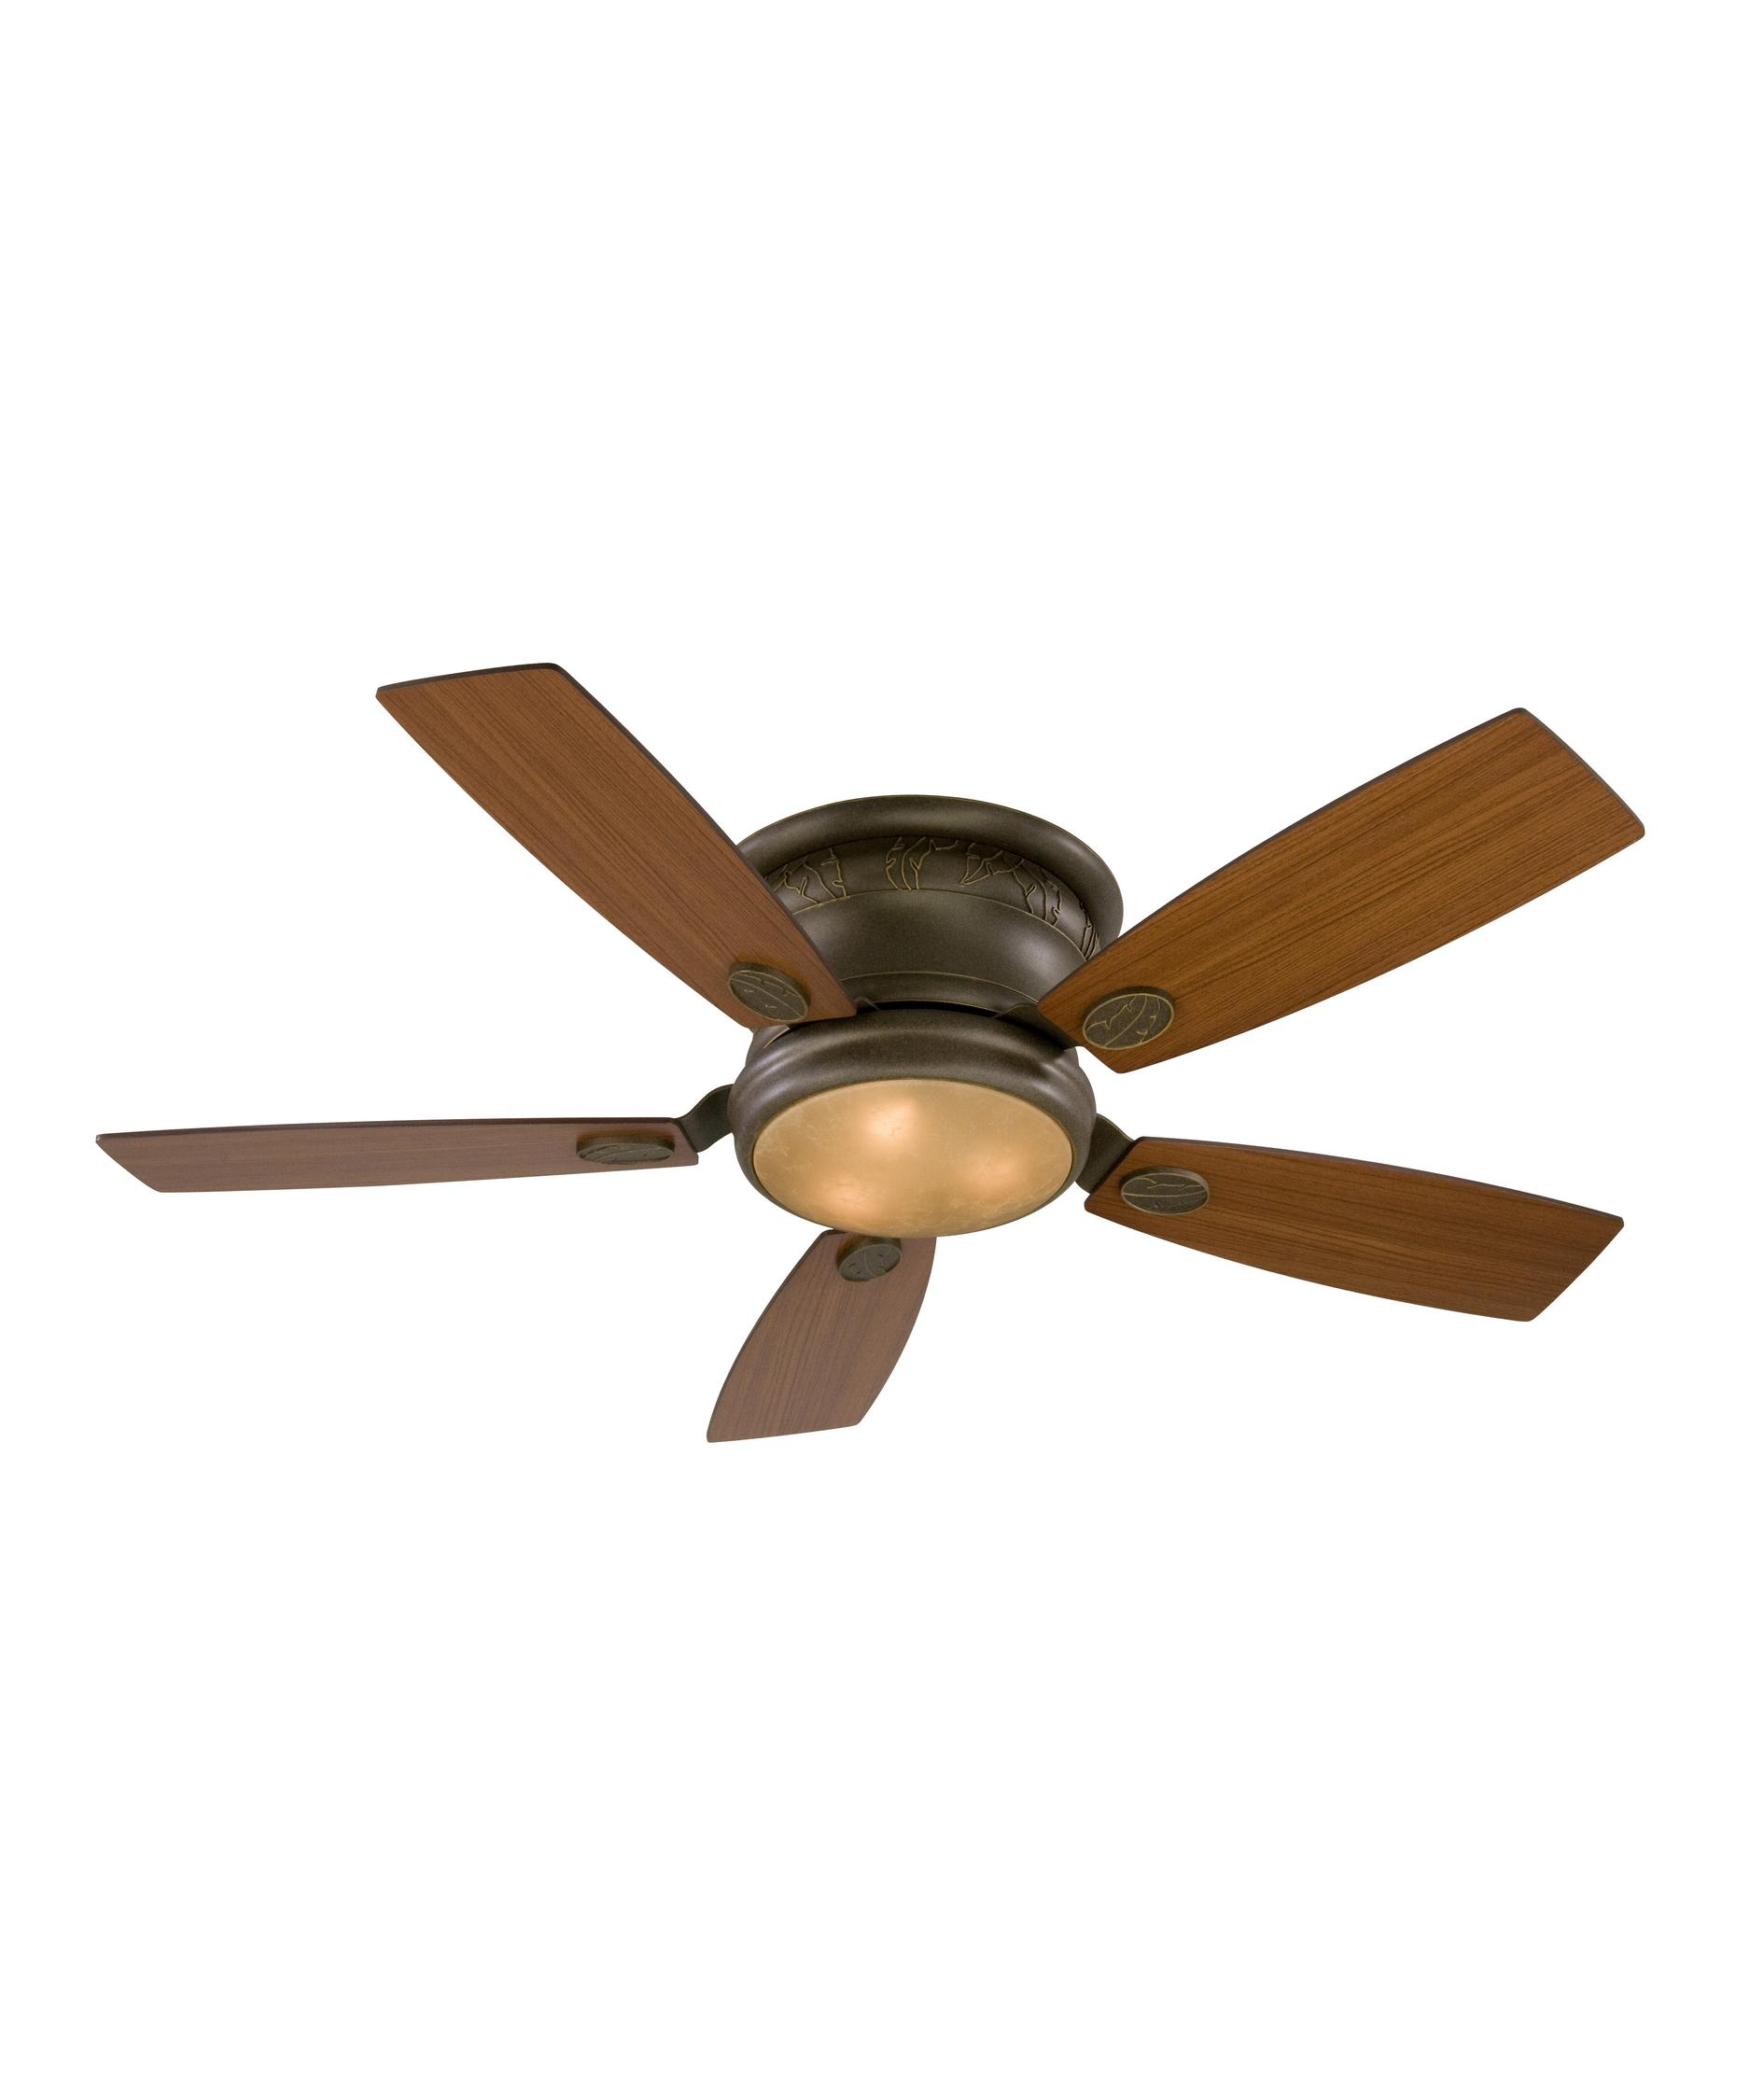 hudson bay ceiling fans photo - 6